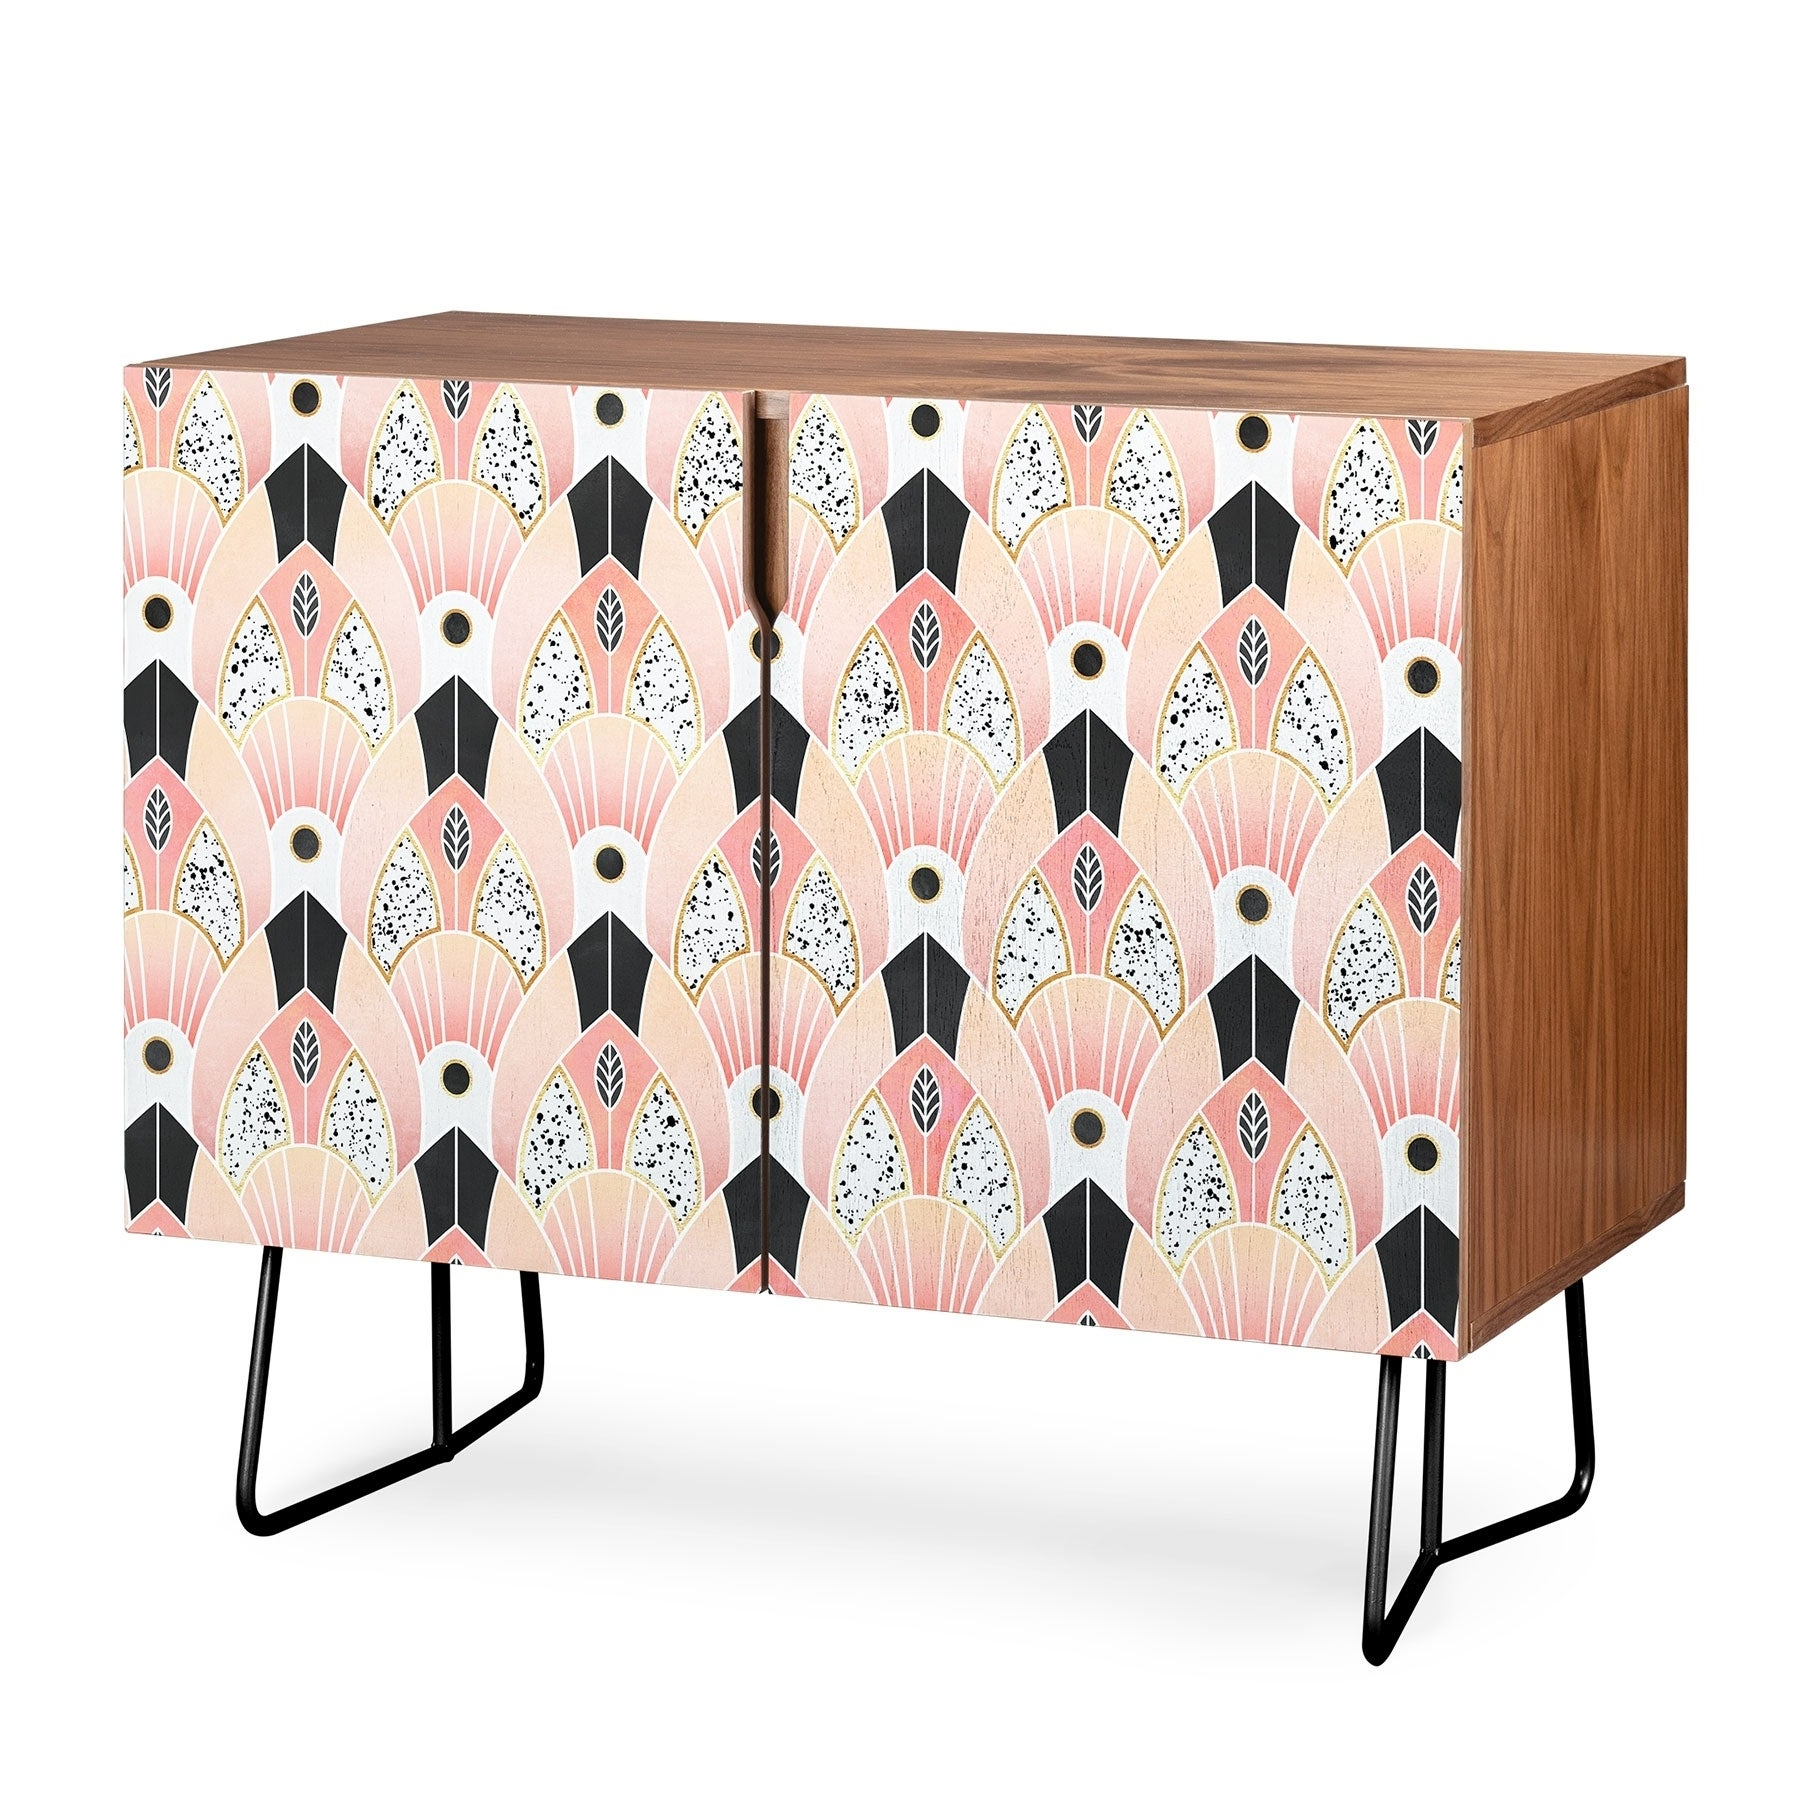 Deny Designs Blush Deco Credenza (Birch Or Walnut, 2 Leg Options) Intended For Blush Deco Credenzas (View 2 of 20)